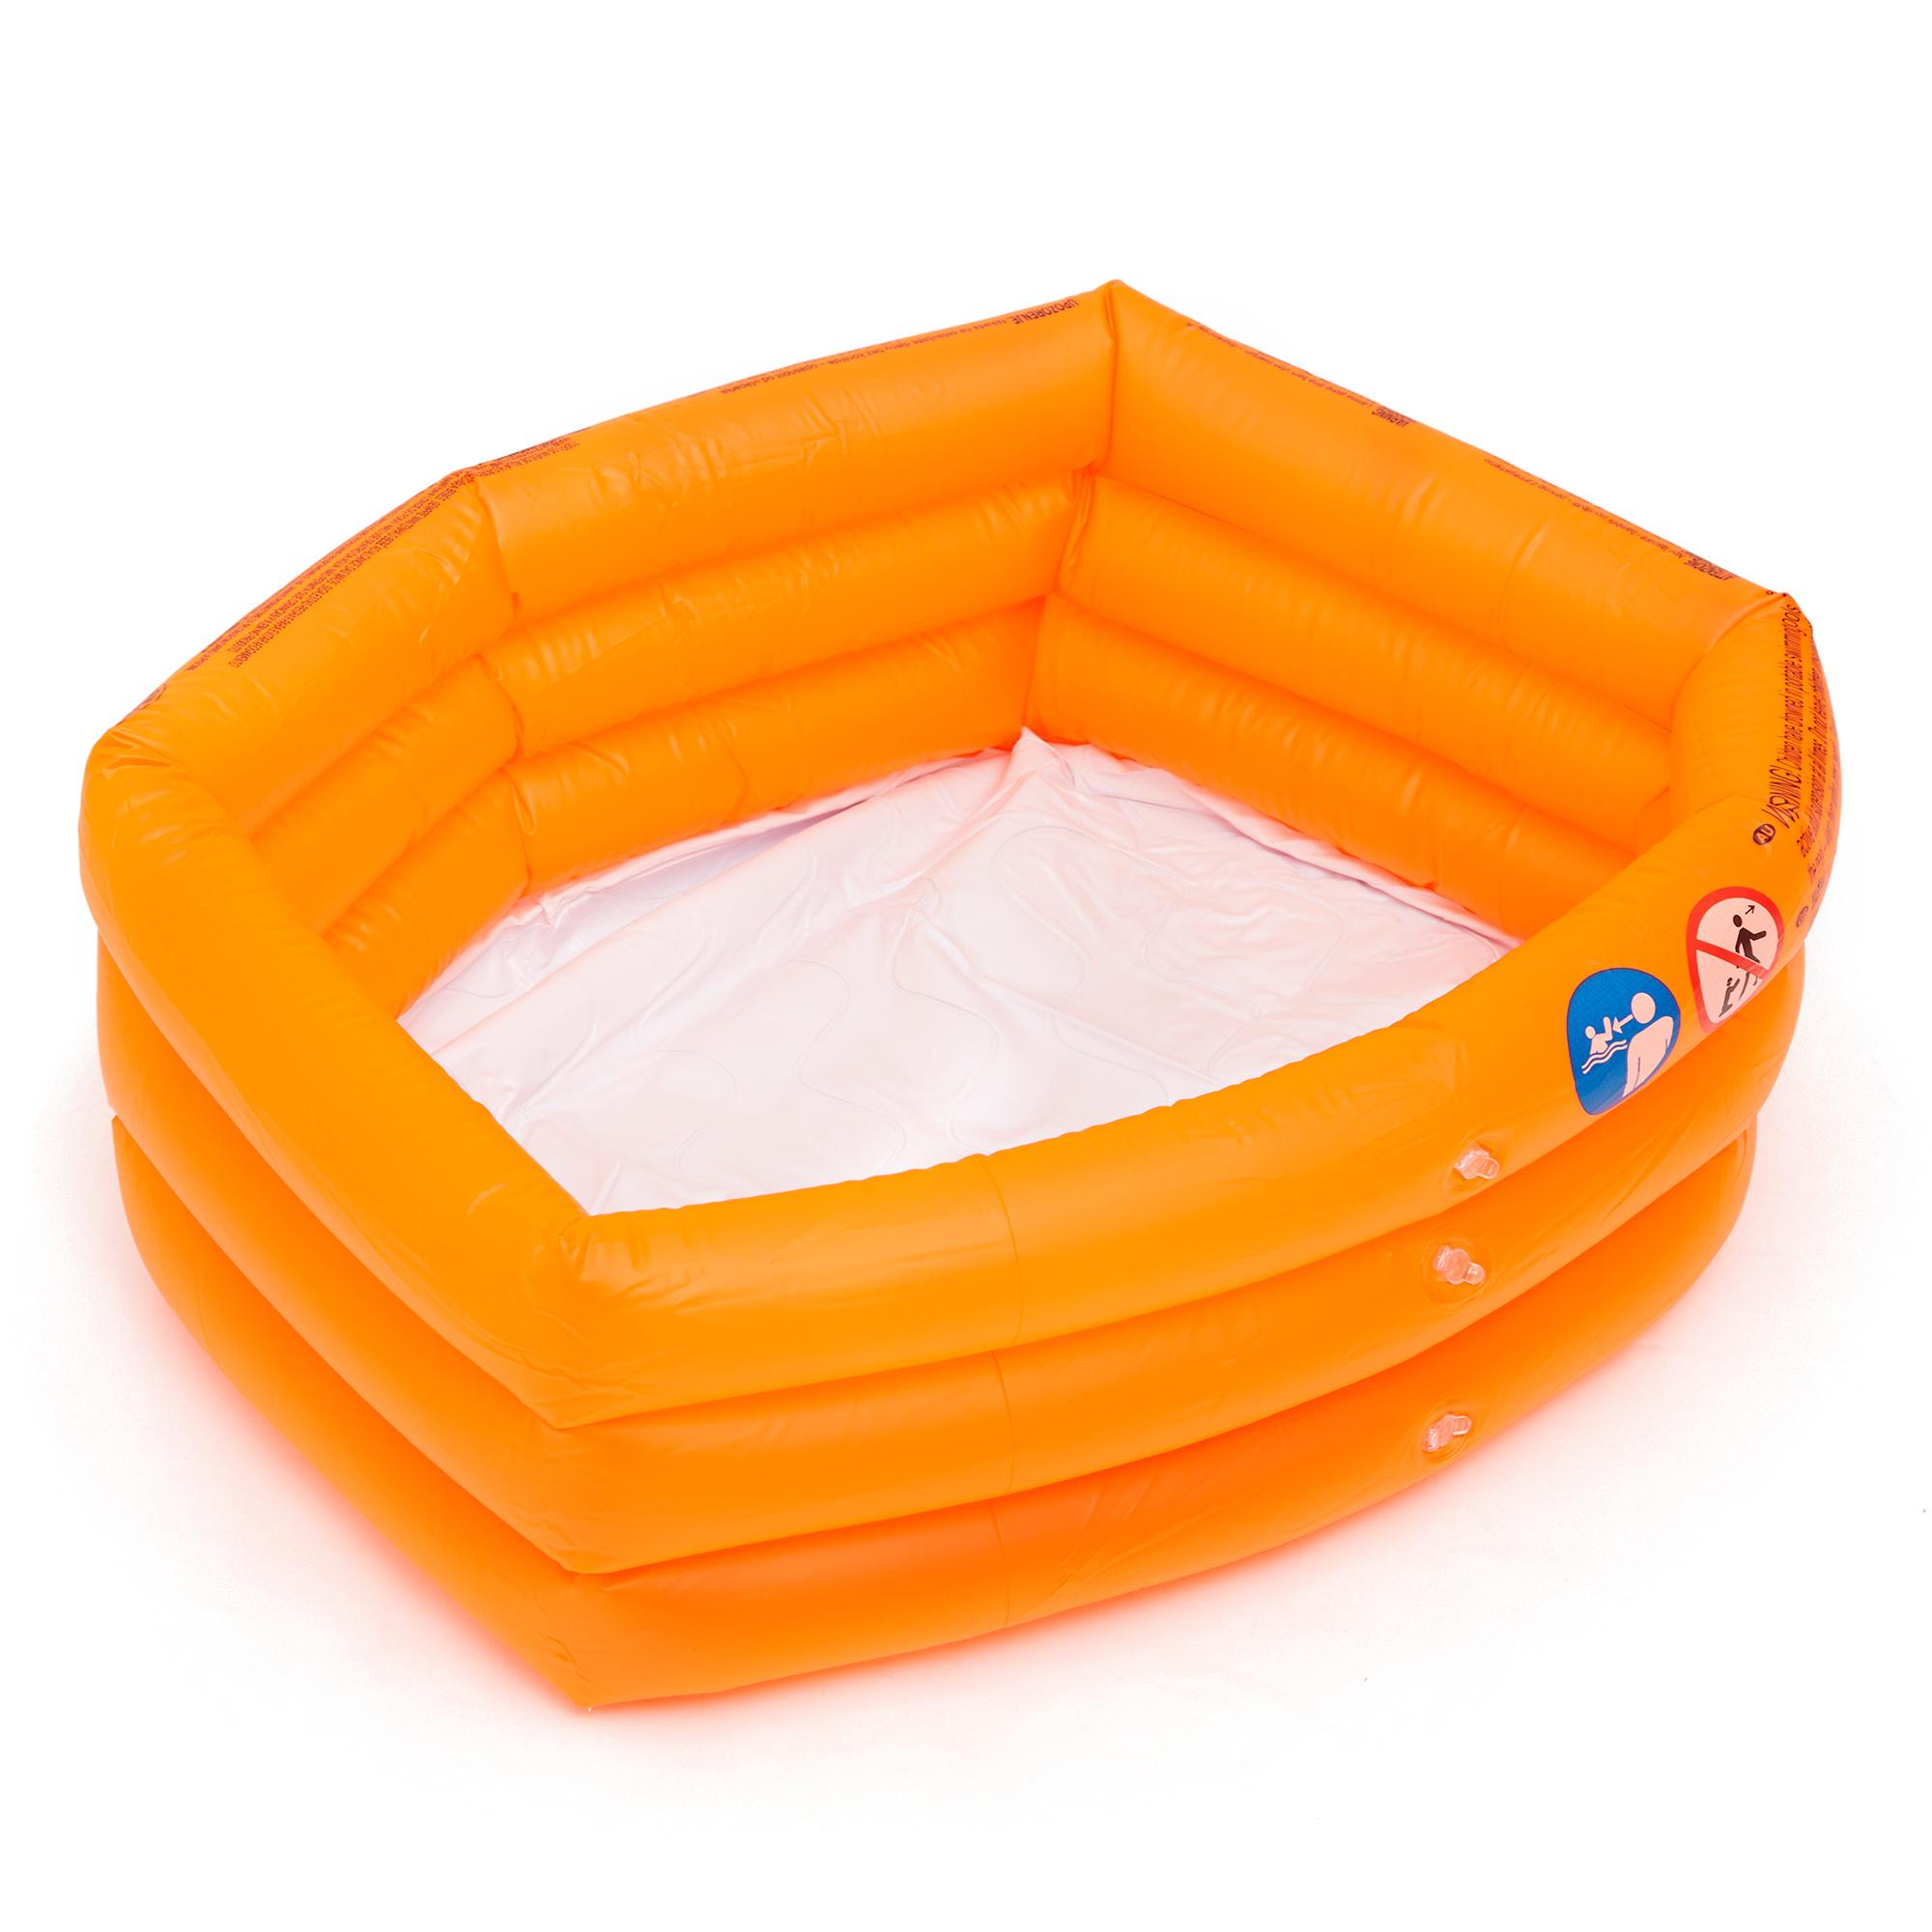 Inflatable Paddling Pool Shop For Cheap Outdoor Toys And Save Online